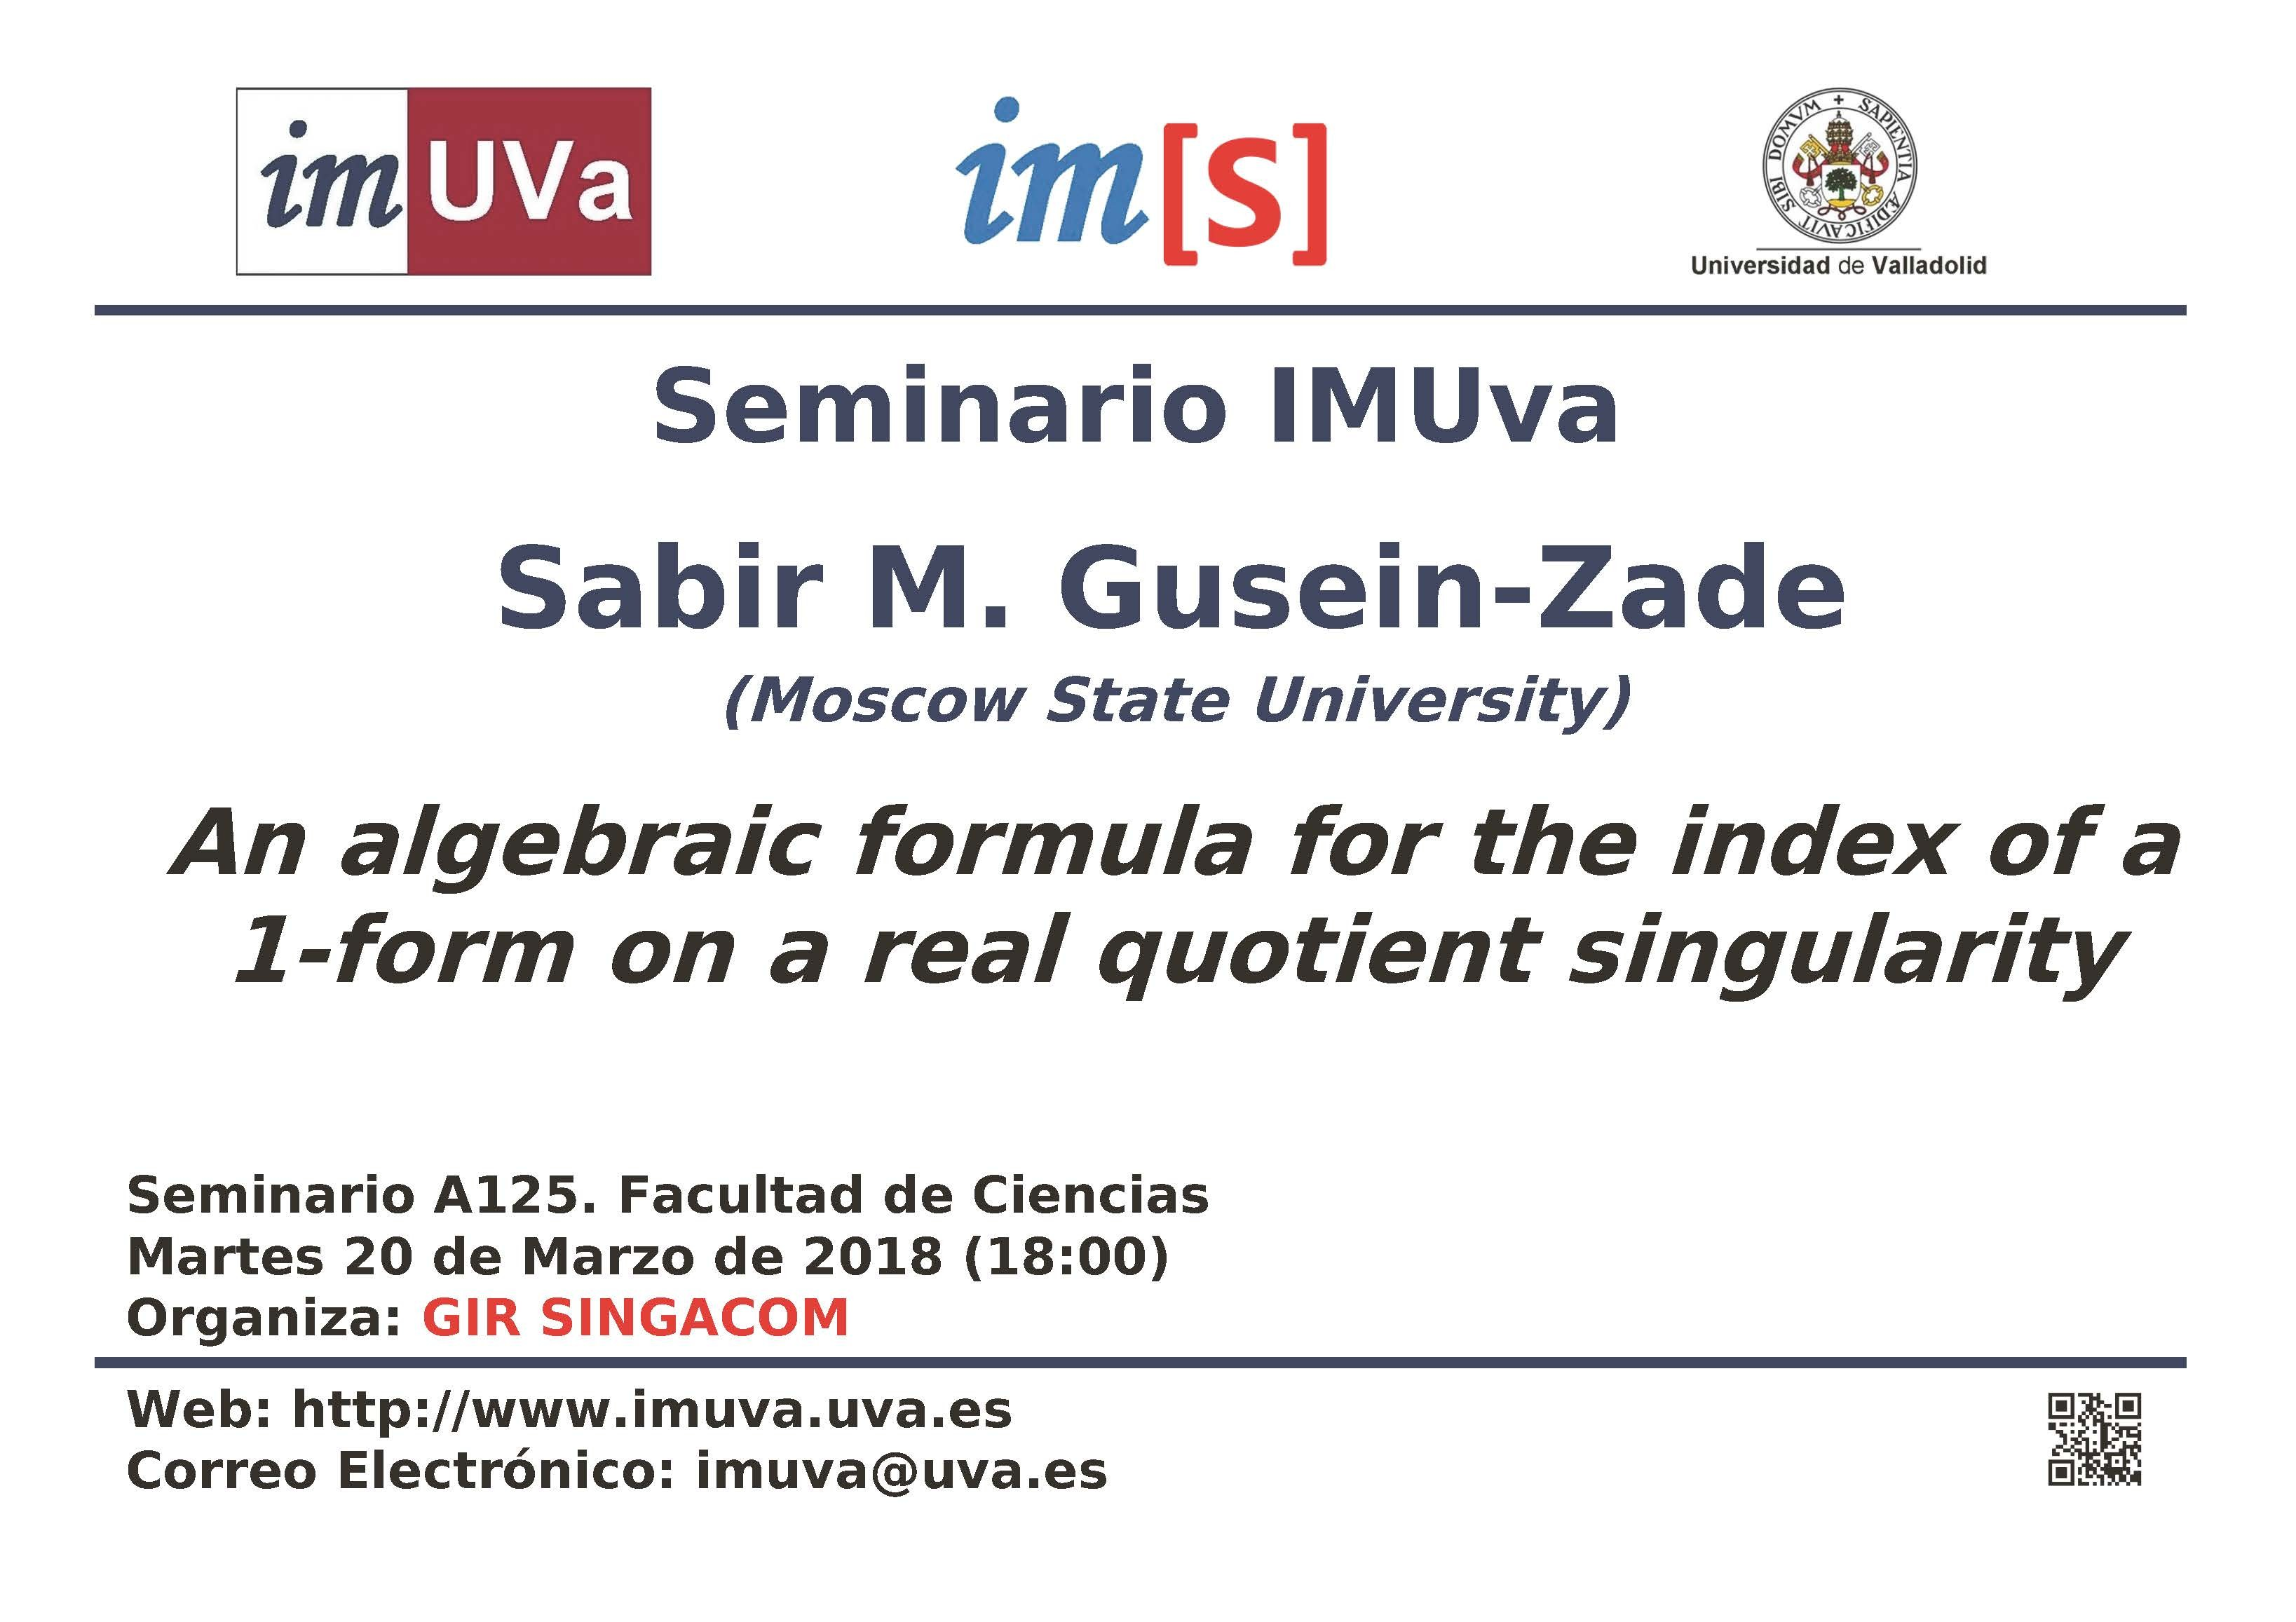 """Seminario IMUVa """"An algebraic formula for the index of a 1 form on a real quotient singularity"""""""